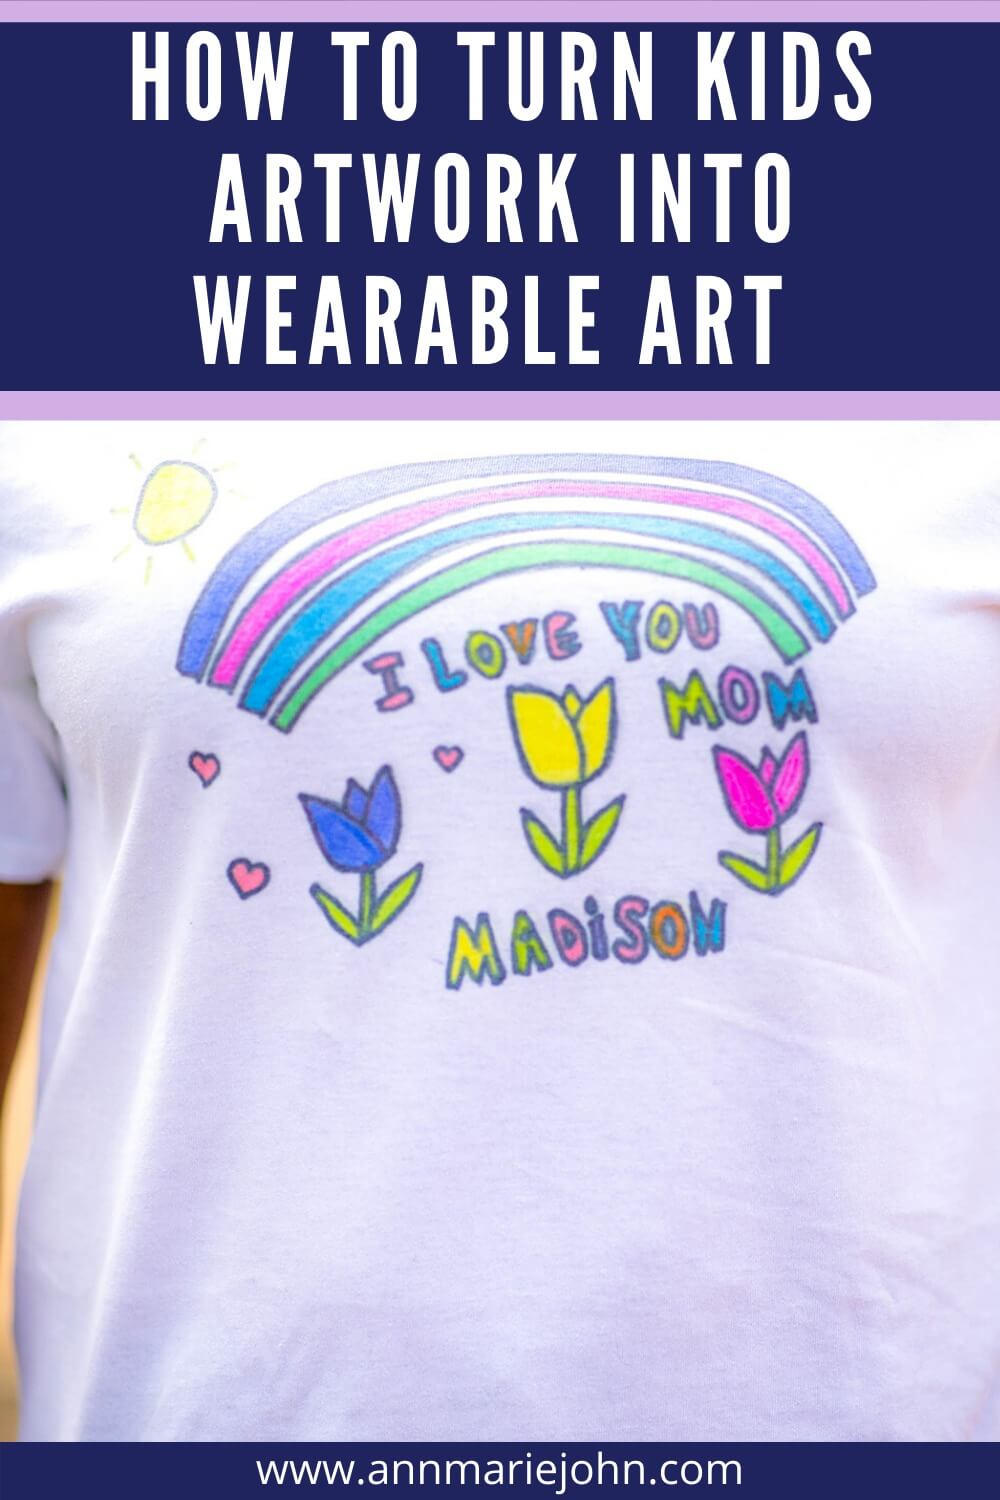 How to Turn Kids Artwork into Wearable Art